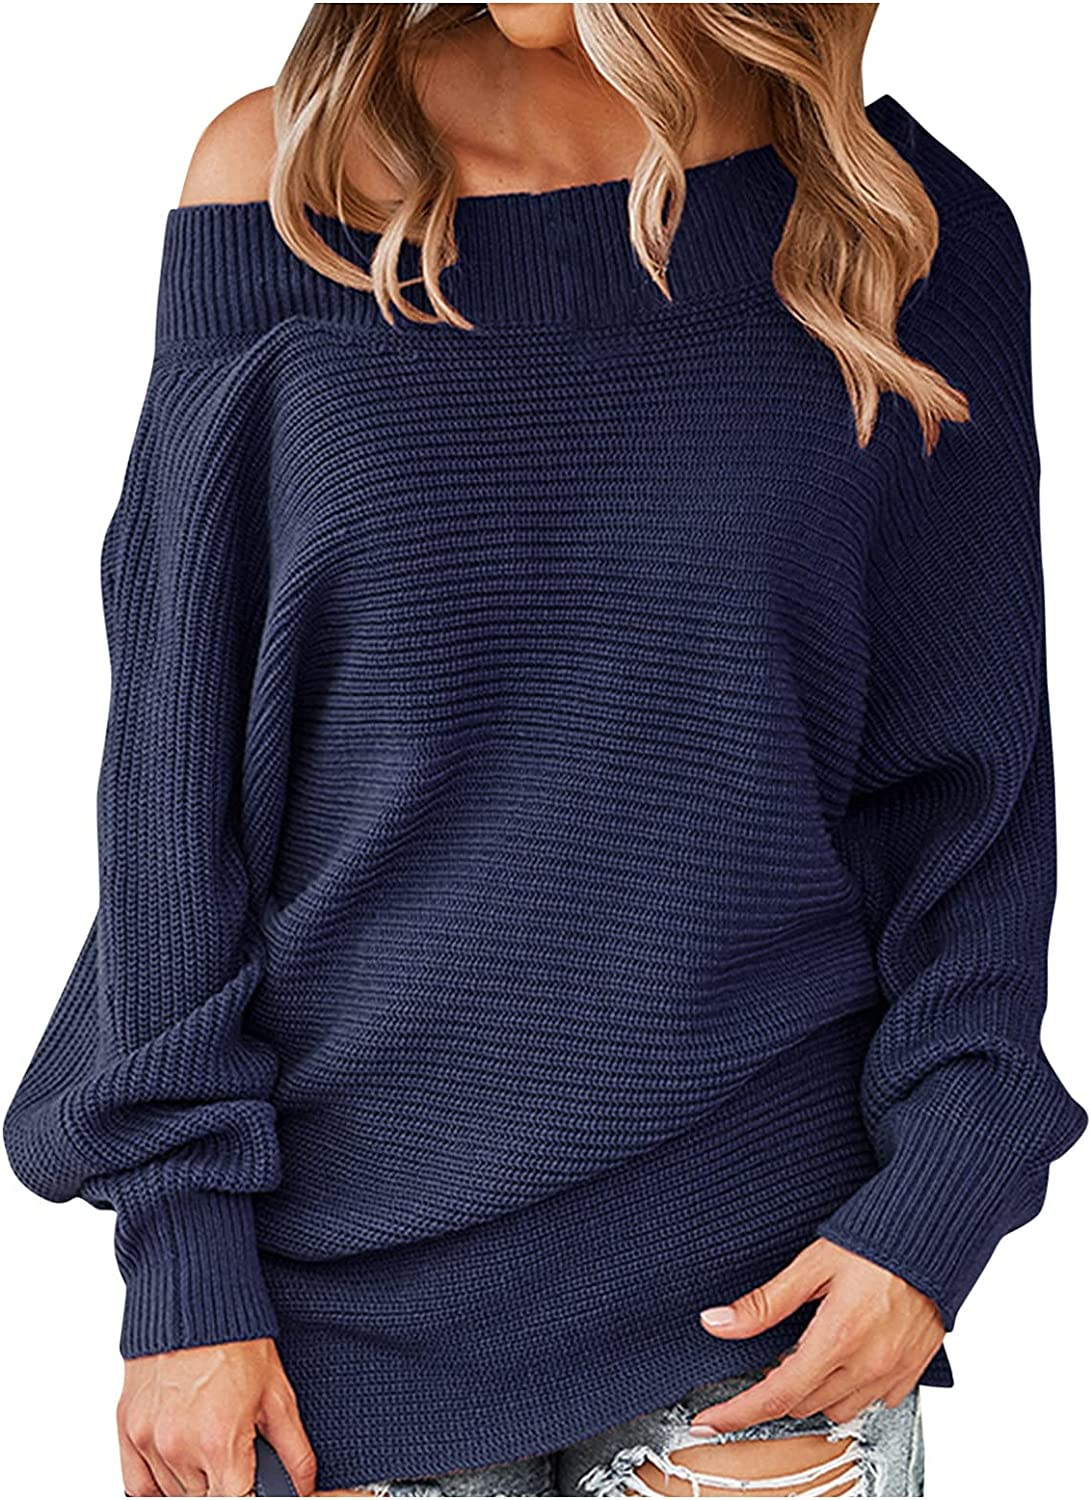 RUIY Fall Off Shoulder Knit Sweaters for Women, Long Sleeve Pullover Knit Jumper Baggy Solid Cardigan Tops Loose Sweater